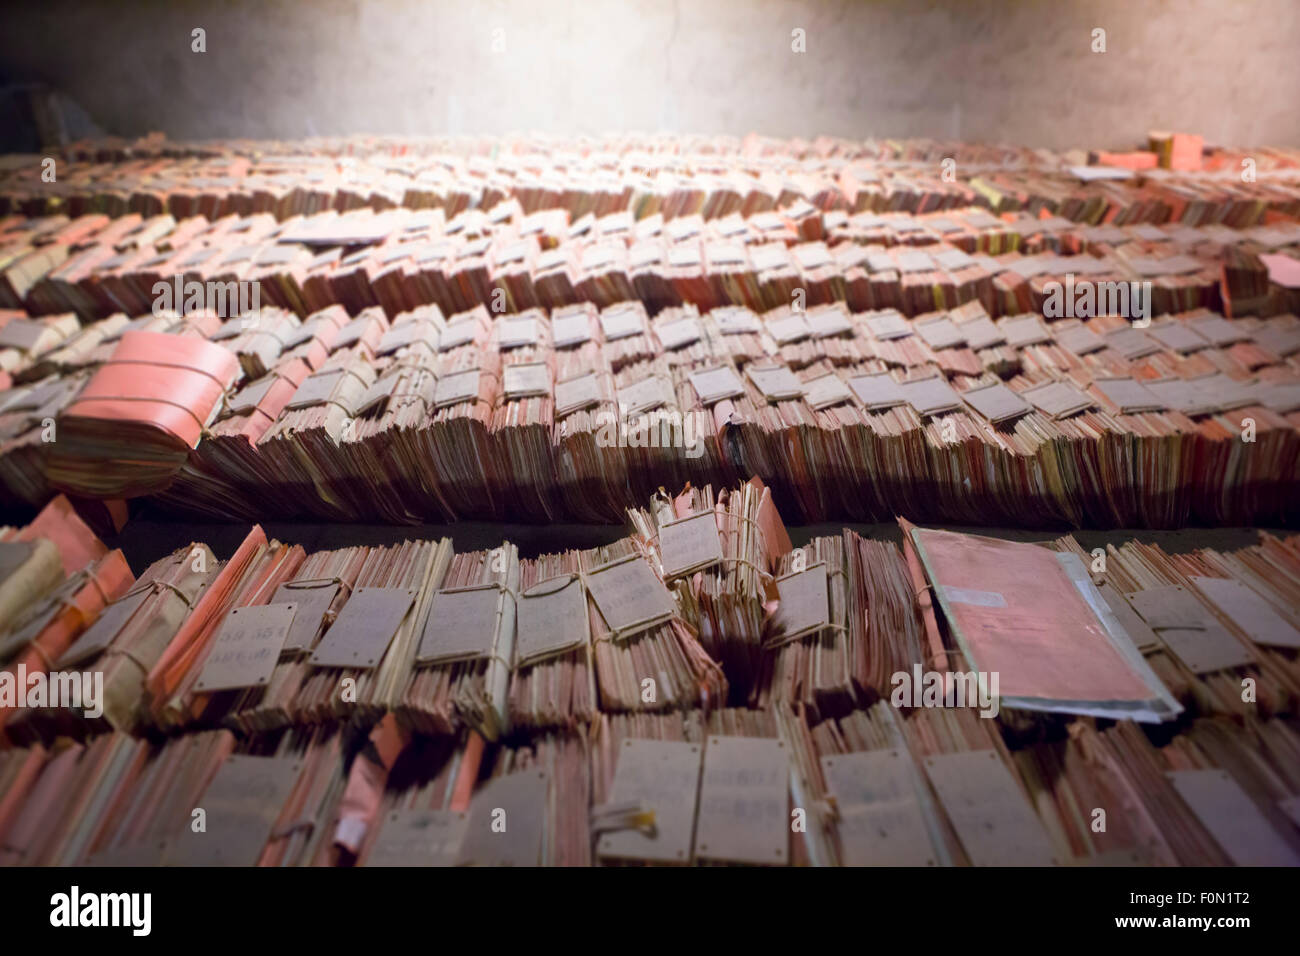 View of the Old files at the high court in Brussels, the picture was taken in the roof of the old building located - Stock Image